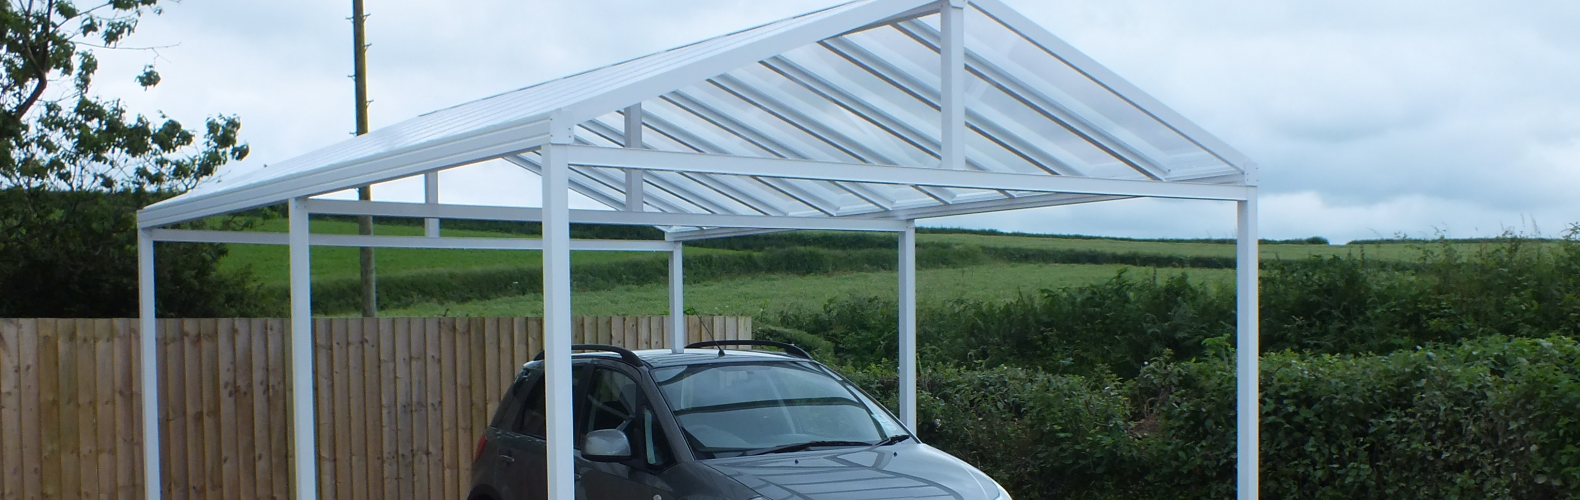 Lumac Canopies Carports And Canopies